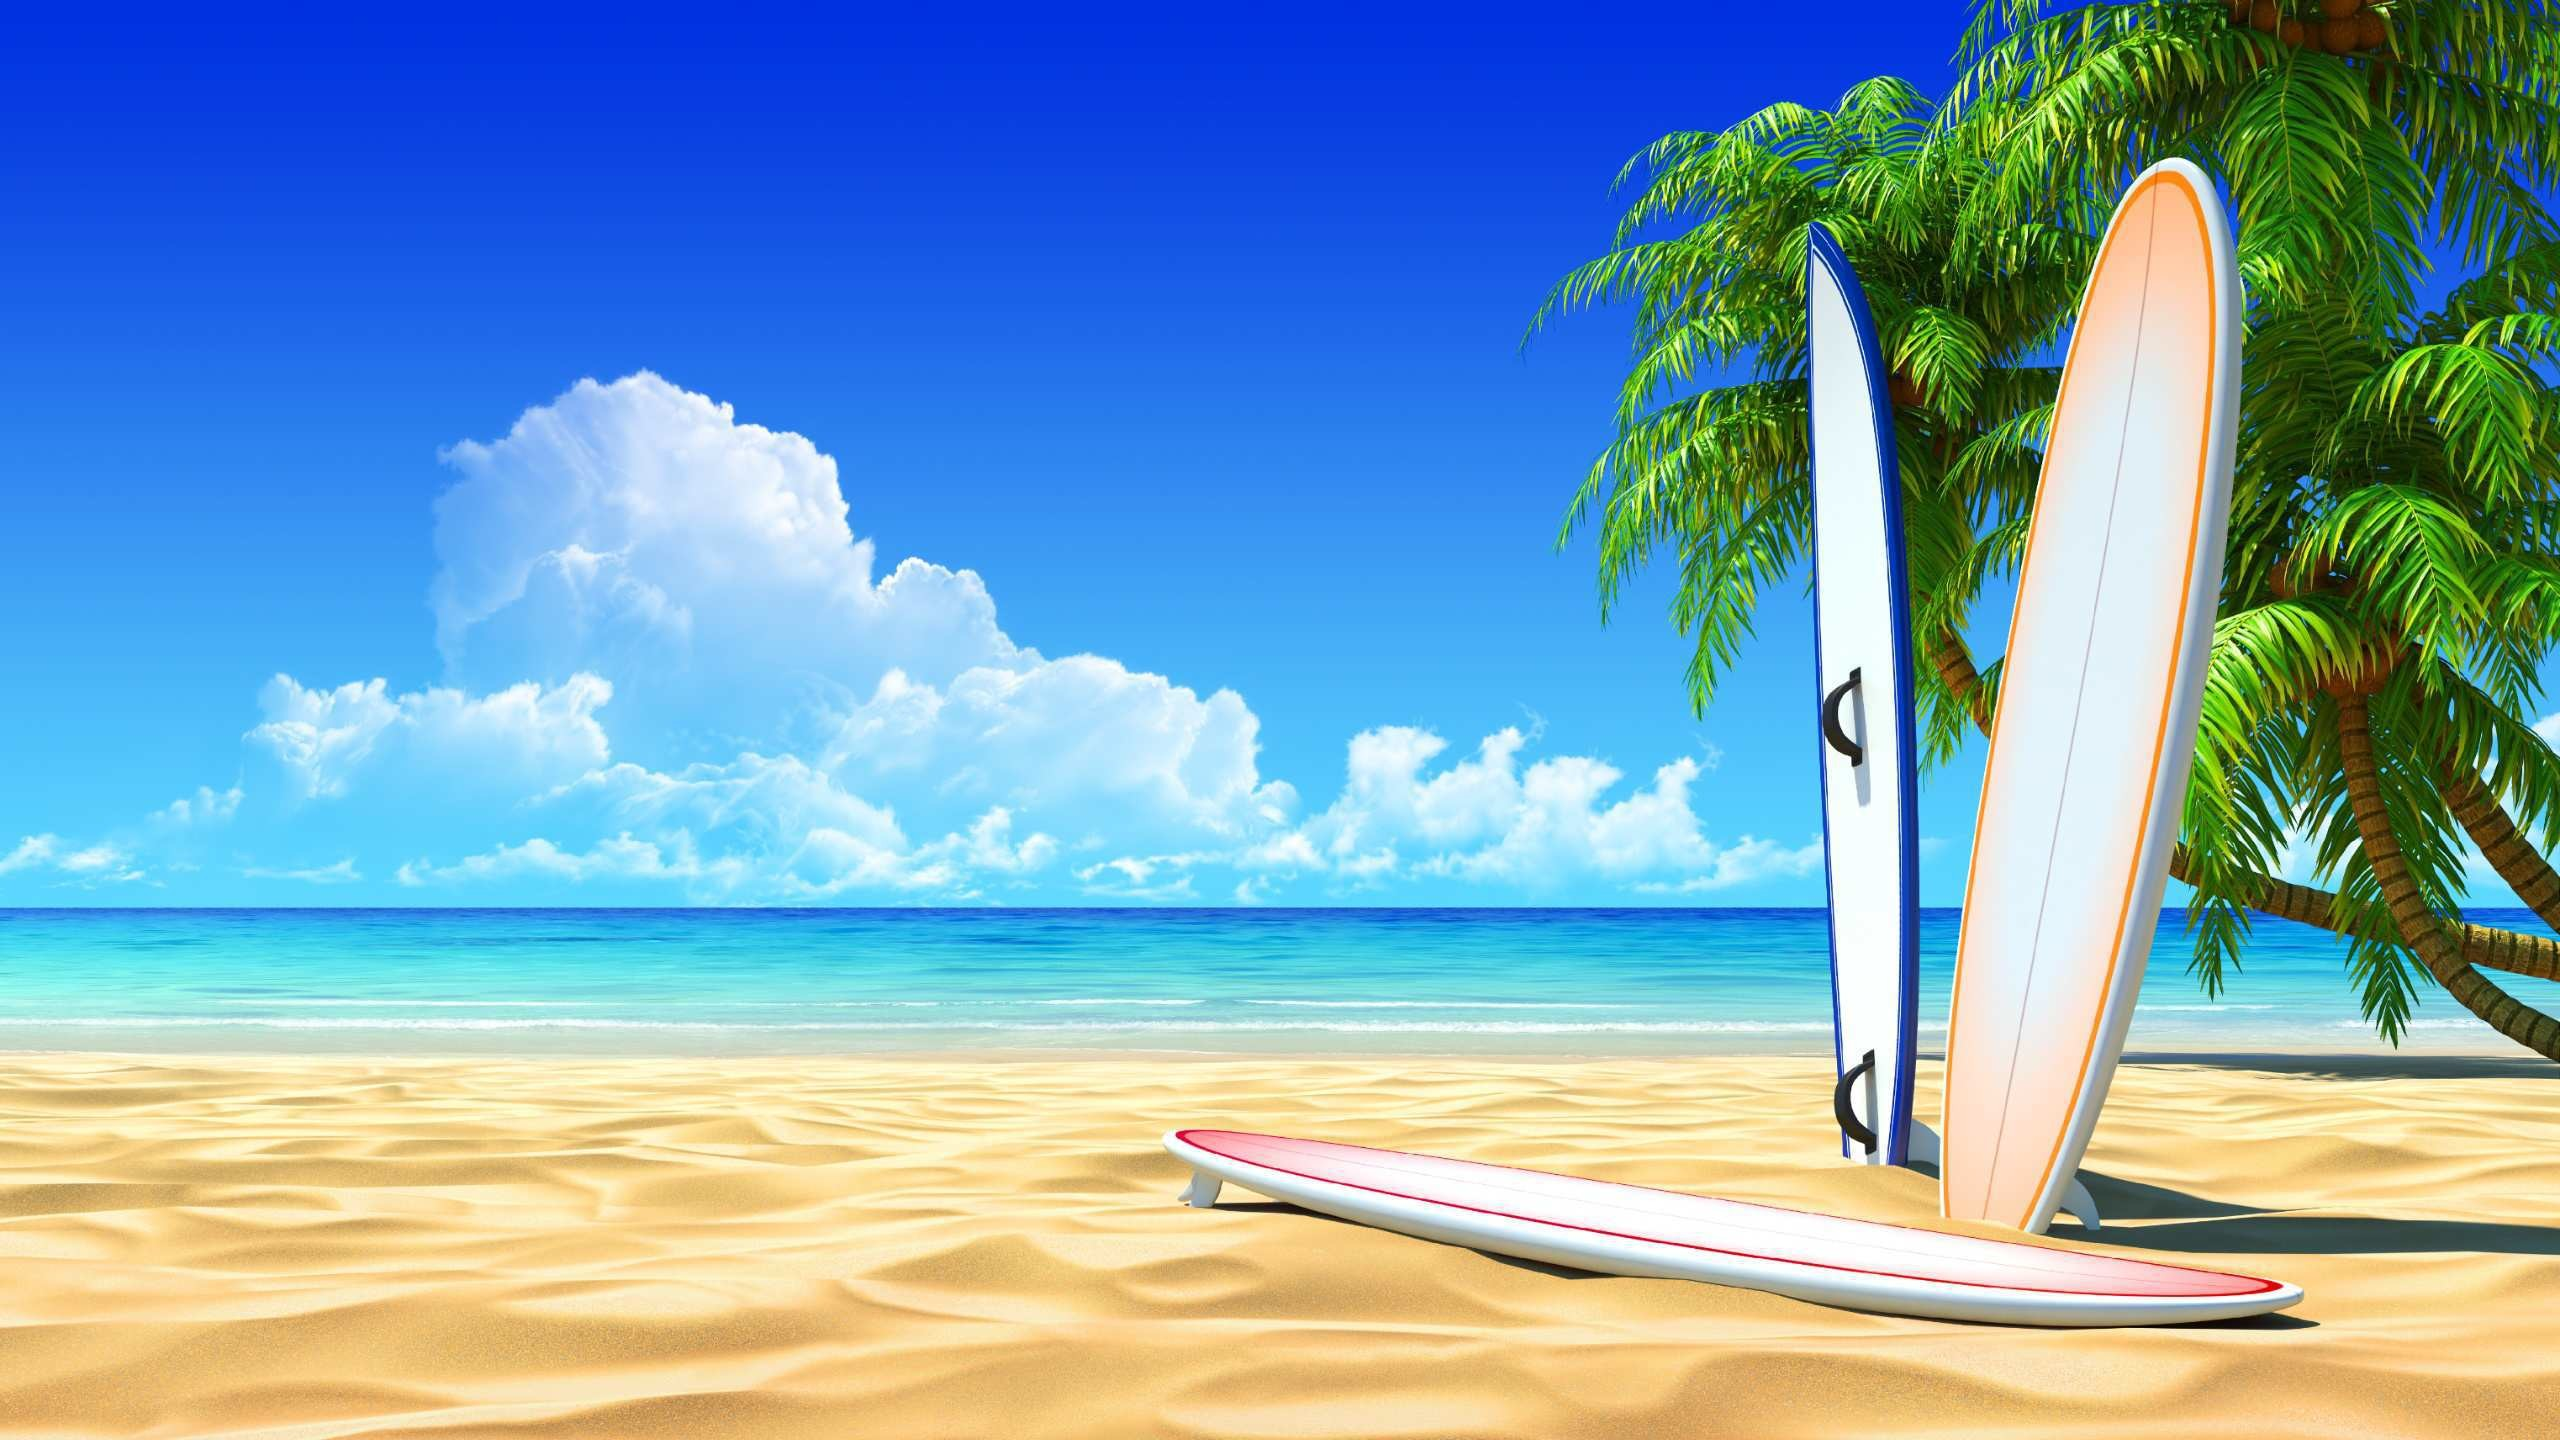 Surfing Wallpapers and Screensavers